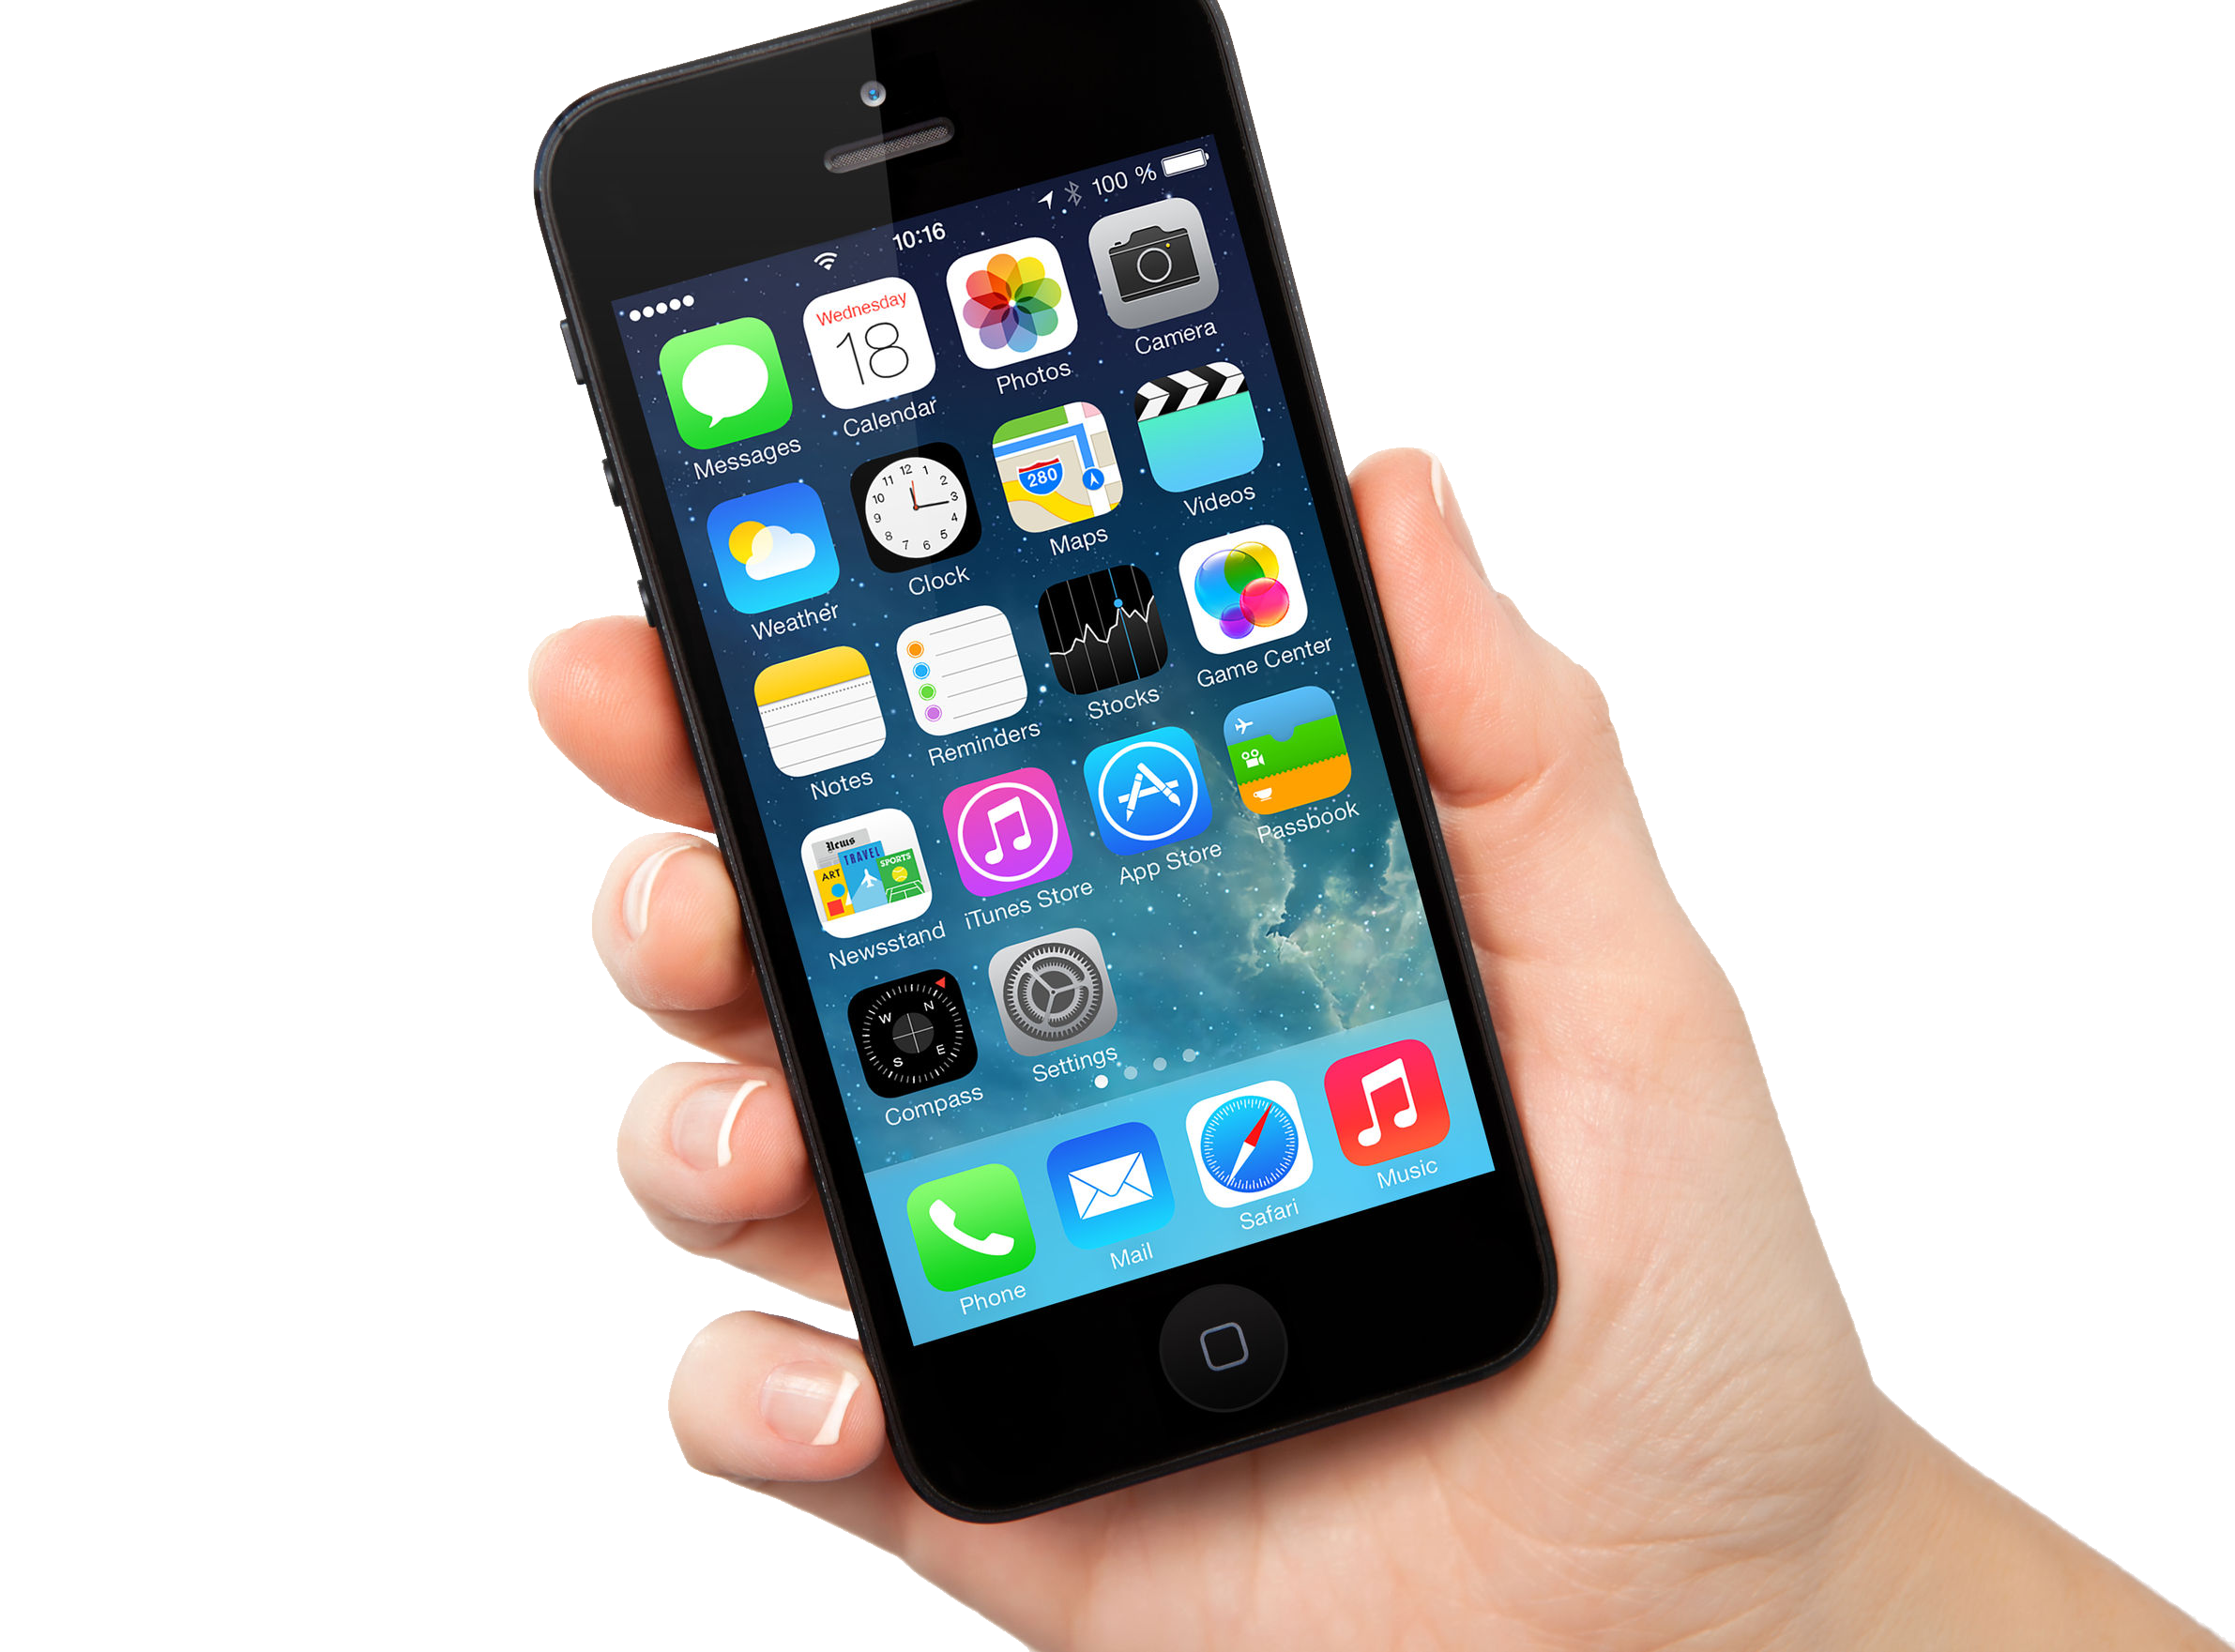 Hands clipart smartphone. Iphone apple png images